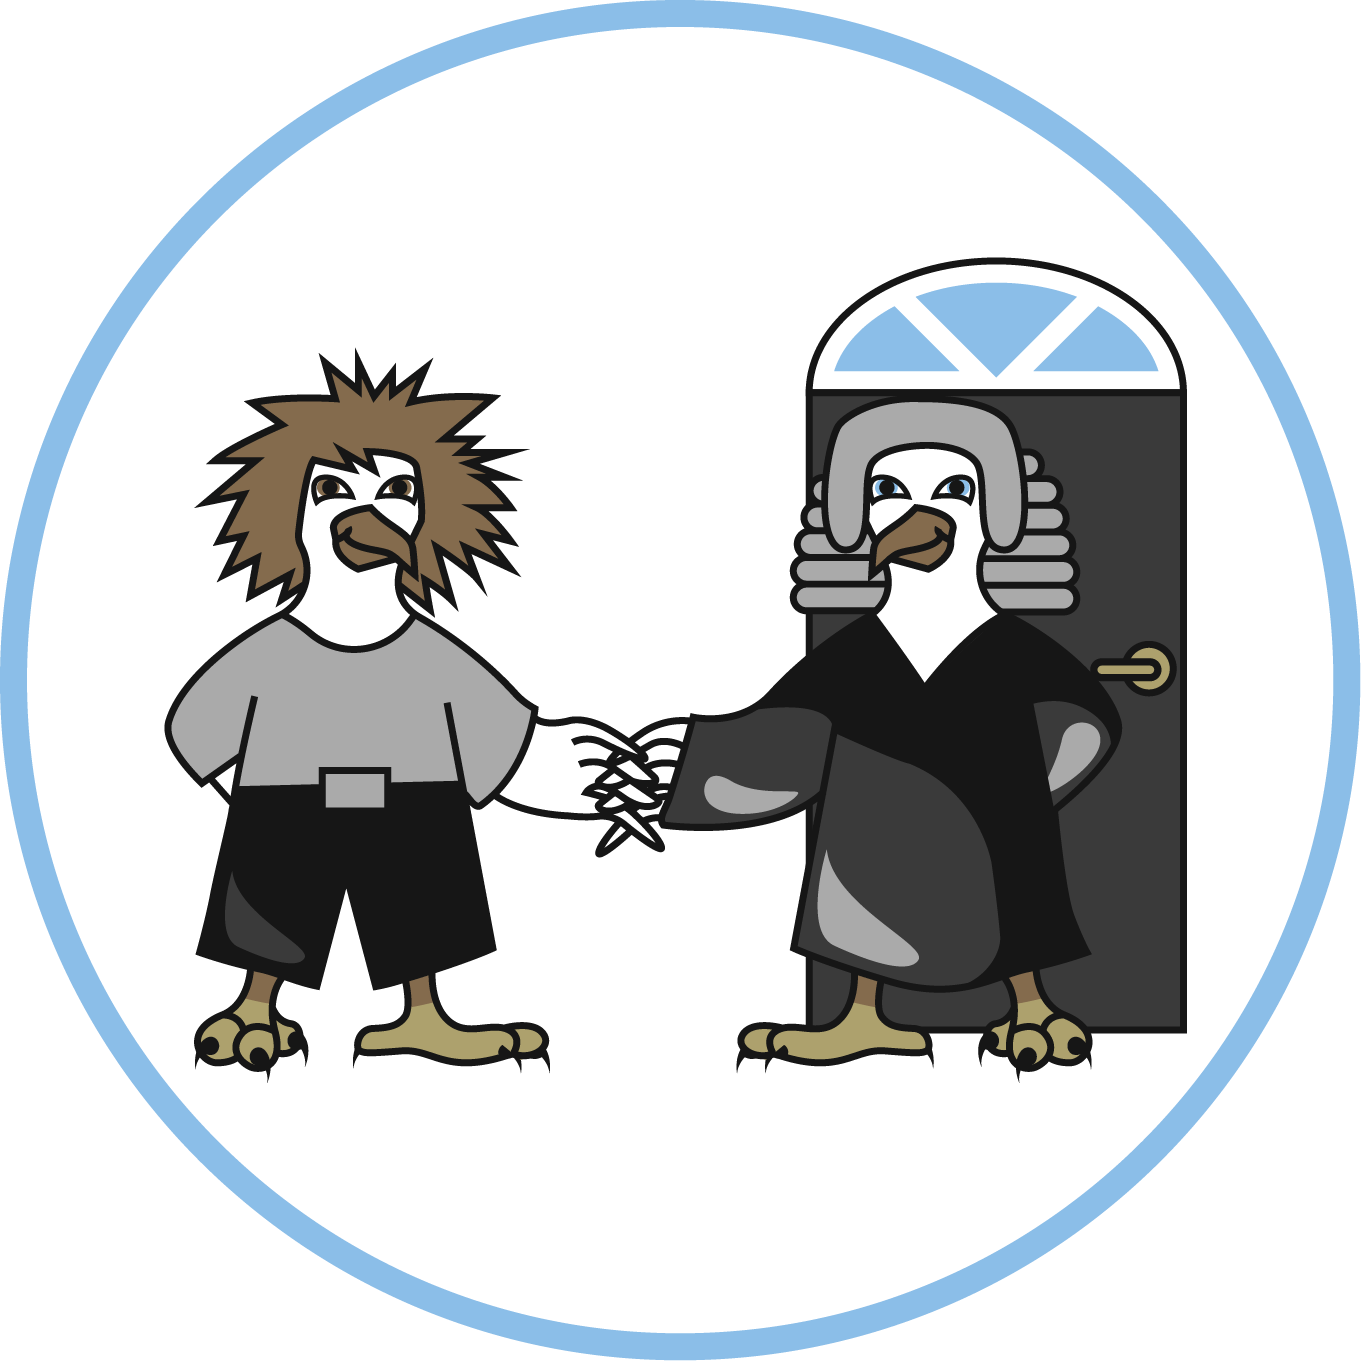 Neighborlegaleaglewithroundpng png neighbours and. Worry clipart psychological abuse